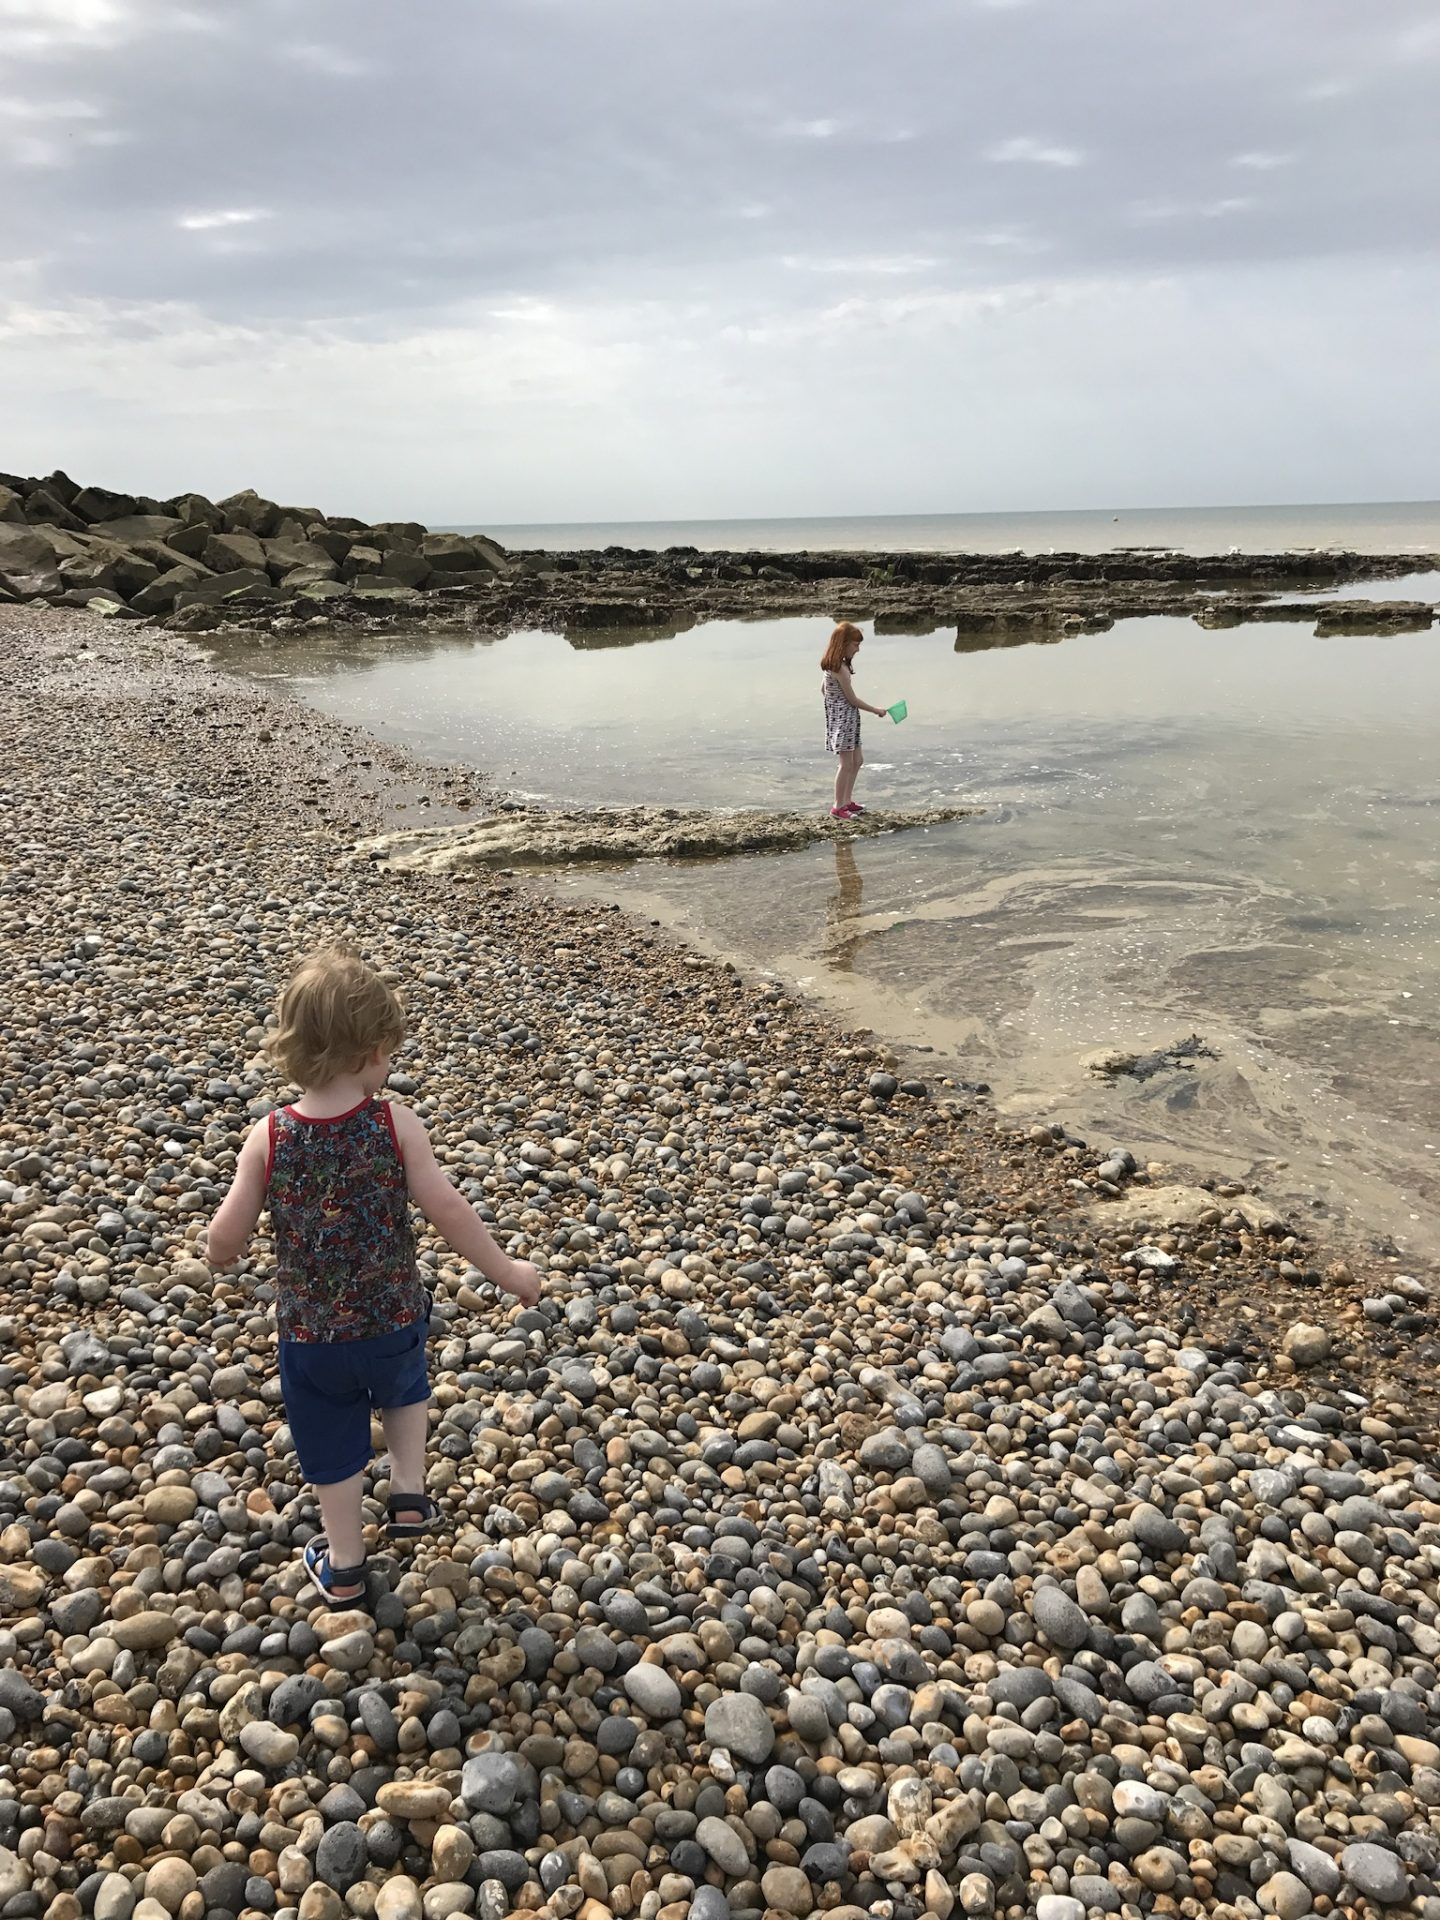 My Favourite Place: Chelle {Rottingdean}